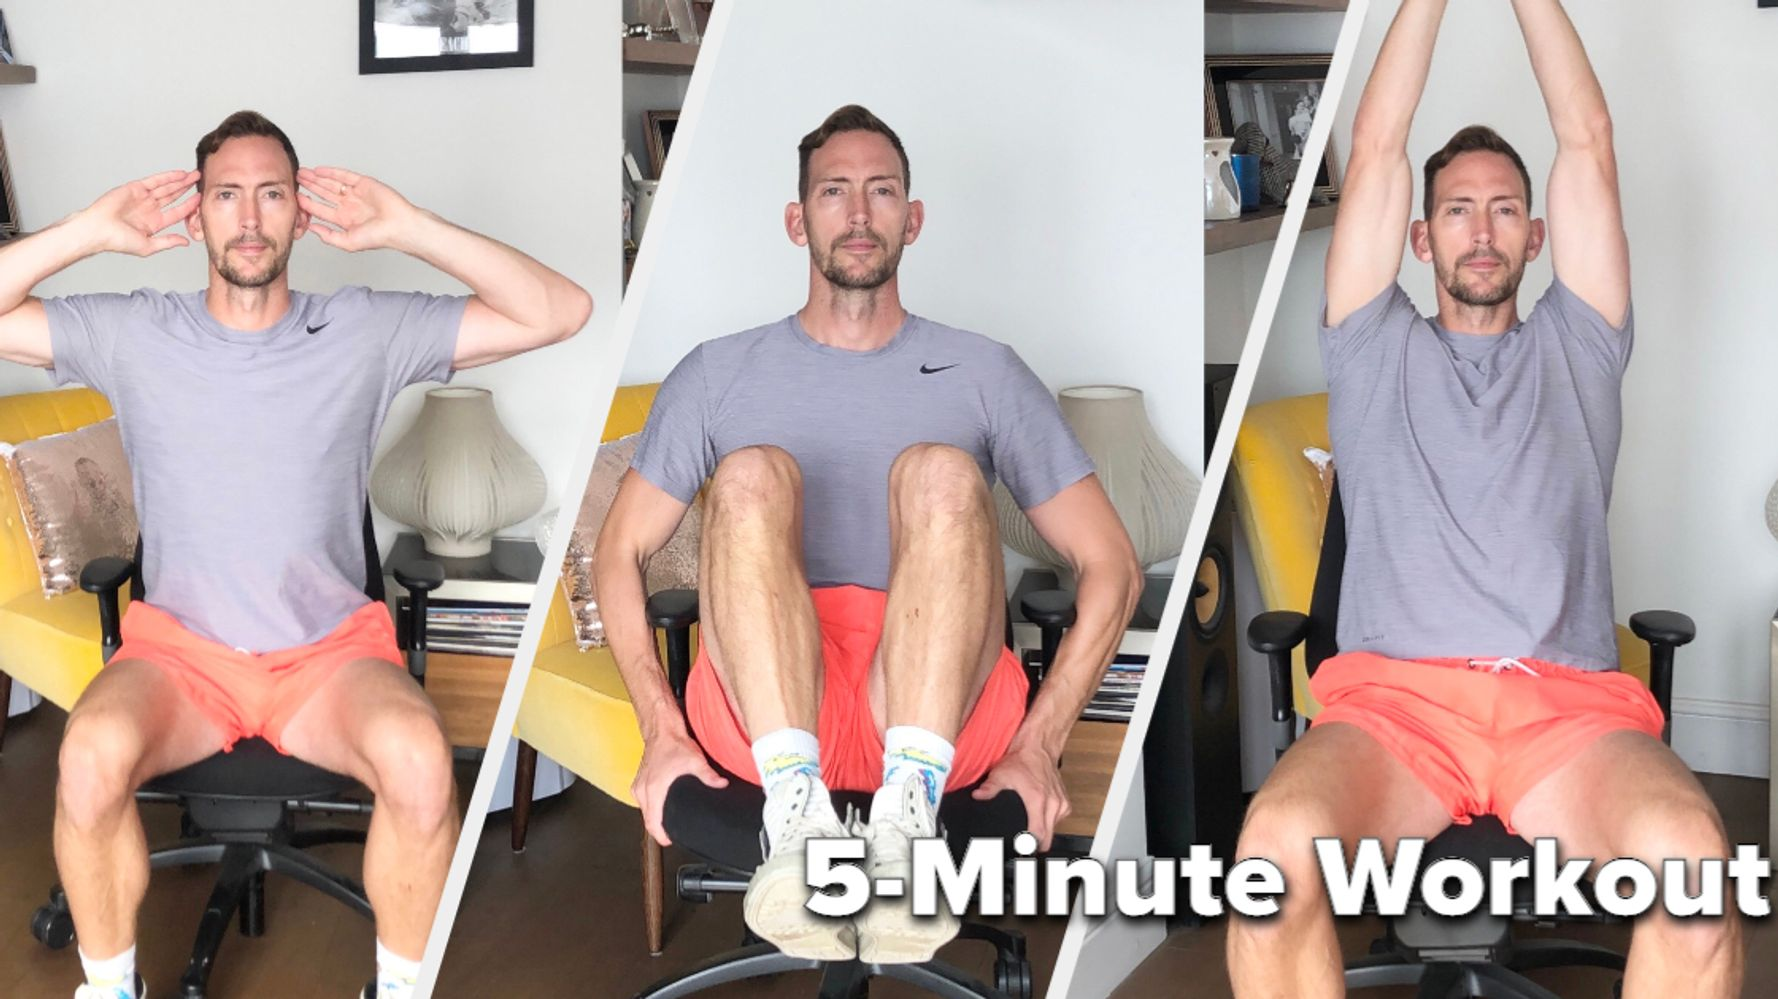 This 5-Minute Workout Can Be Completed From Your Chair